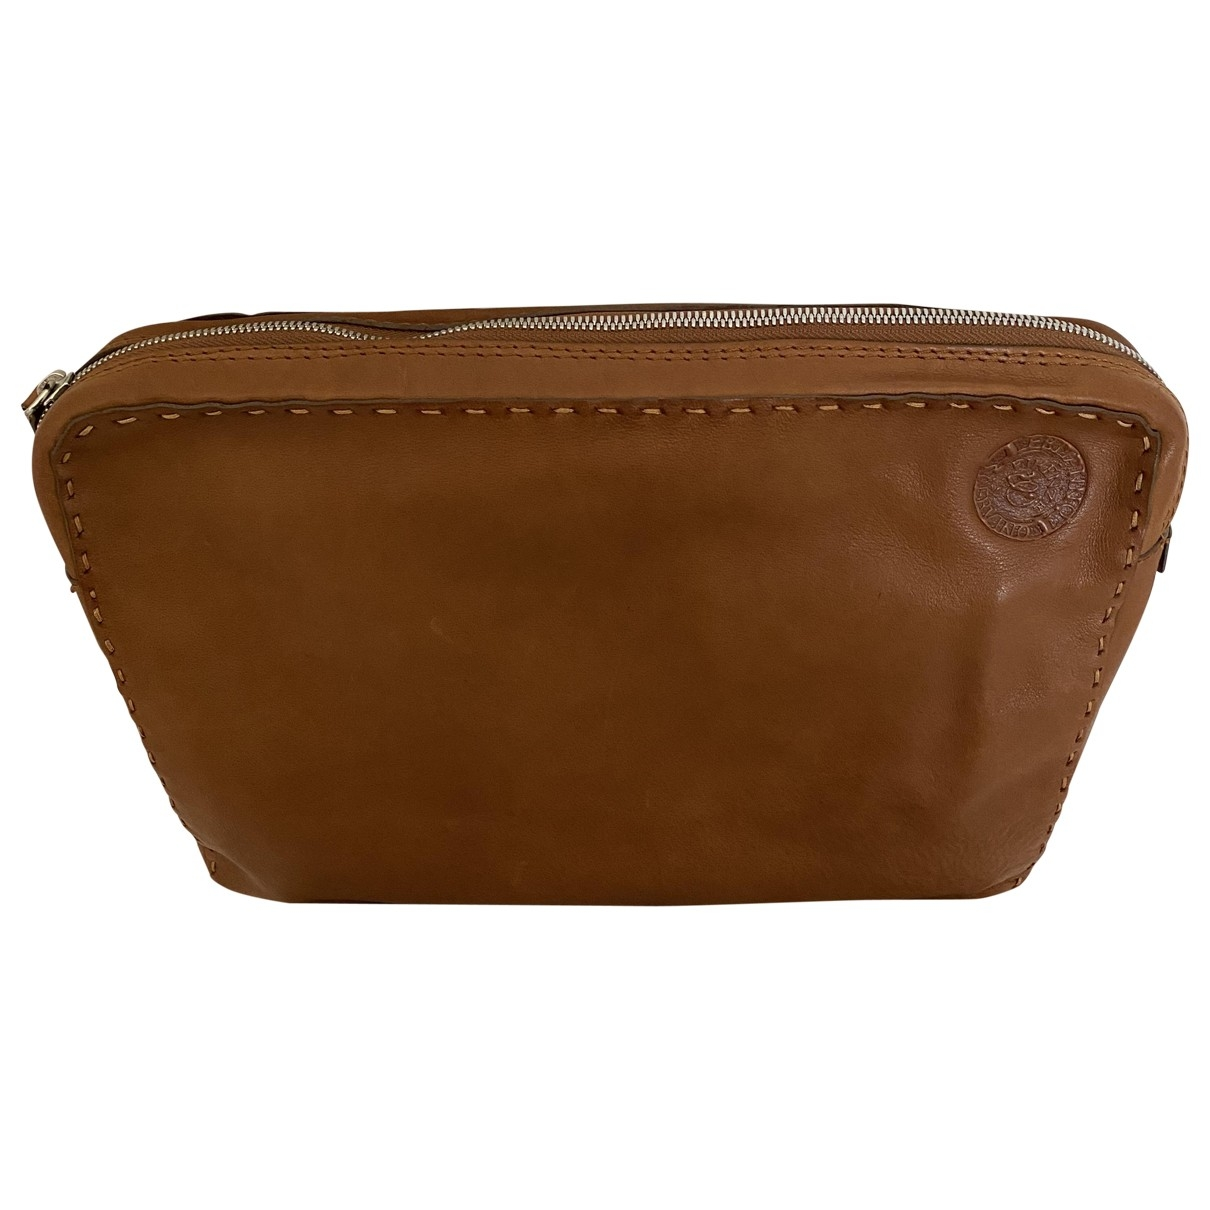 Ermanno Scervino \N Brown Leather Clutch bag for Women \N